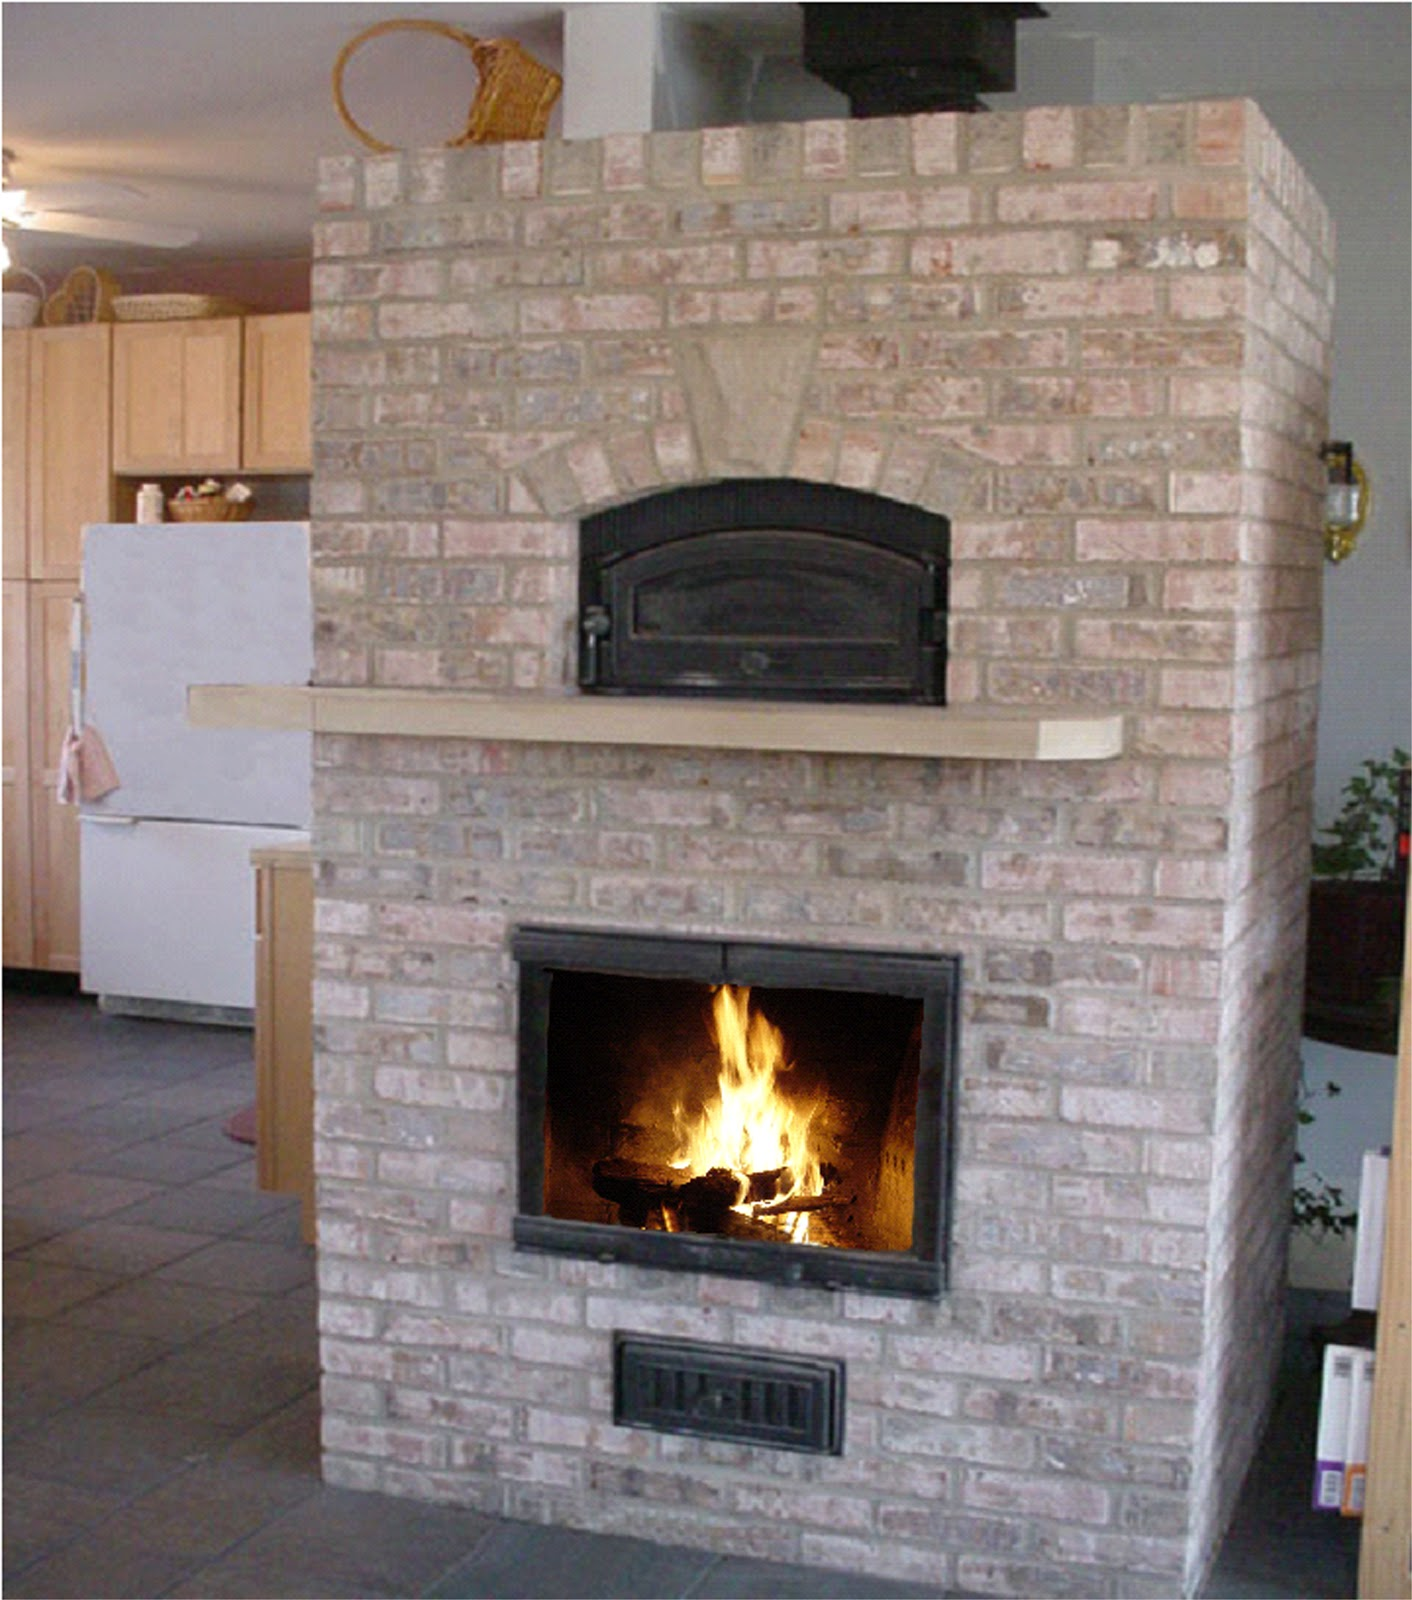 Wood Fired Heating And Cooking Be Prepared With A Masonry